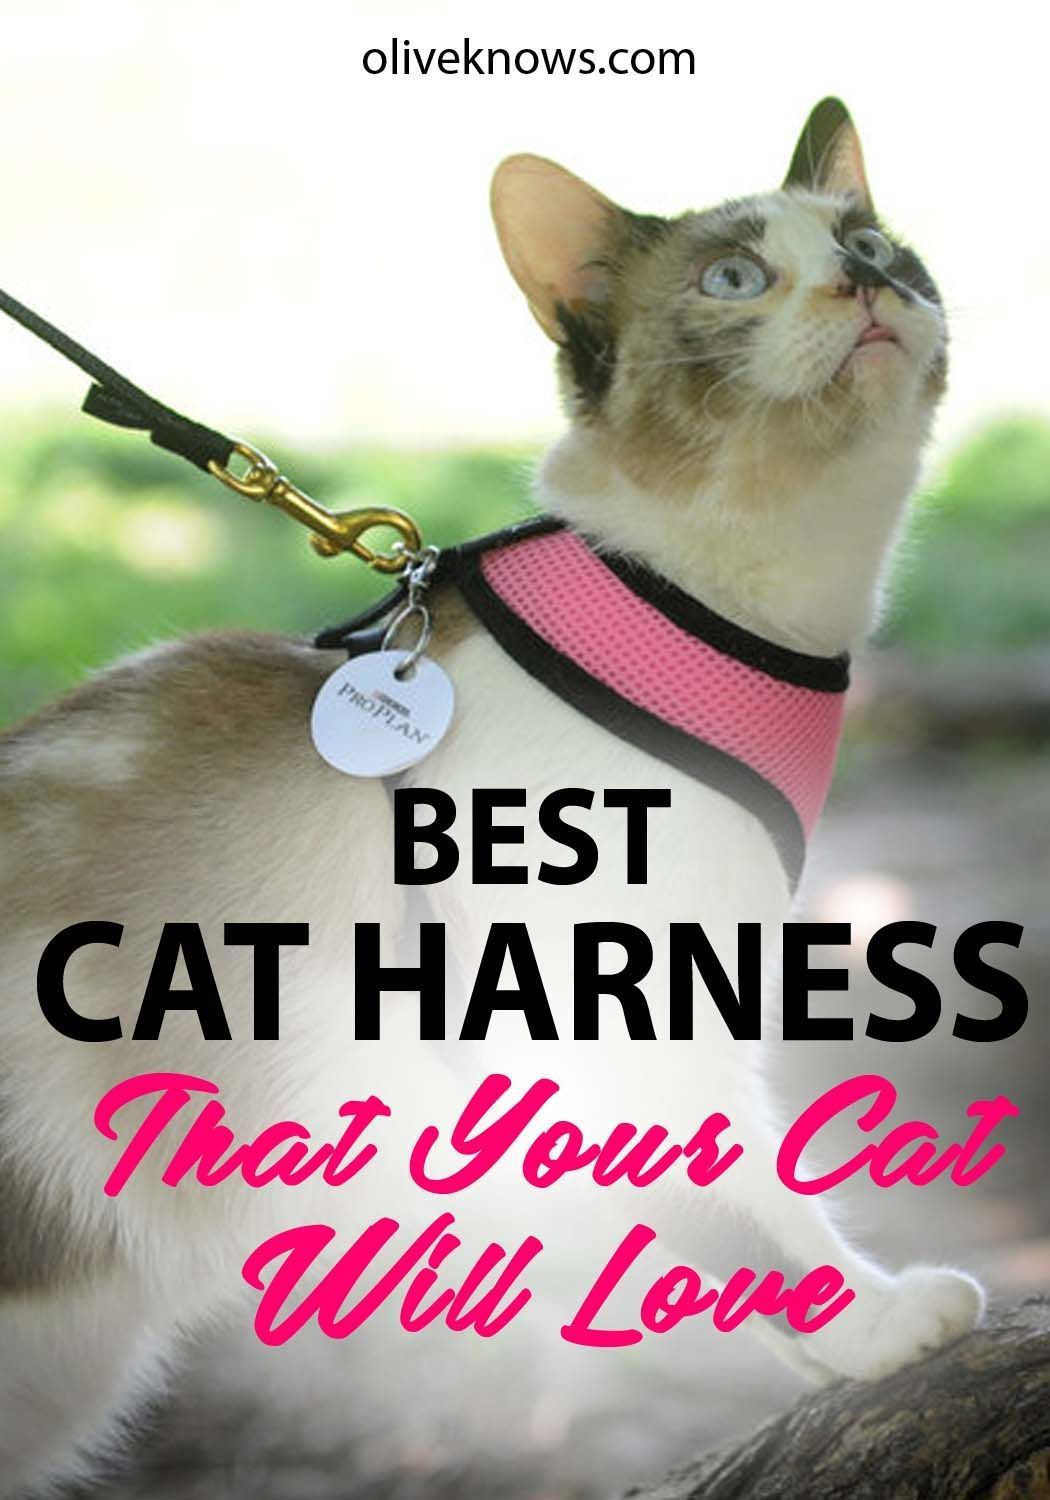 Cat harnesses can help you maintain a strict workout